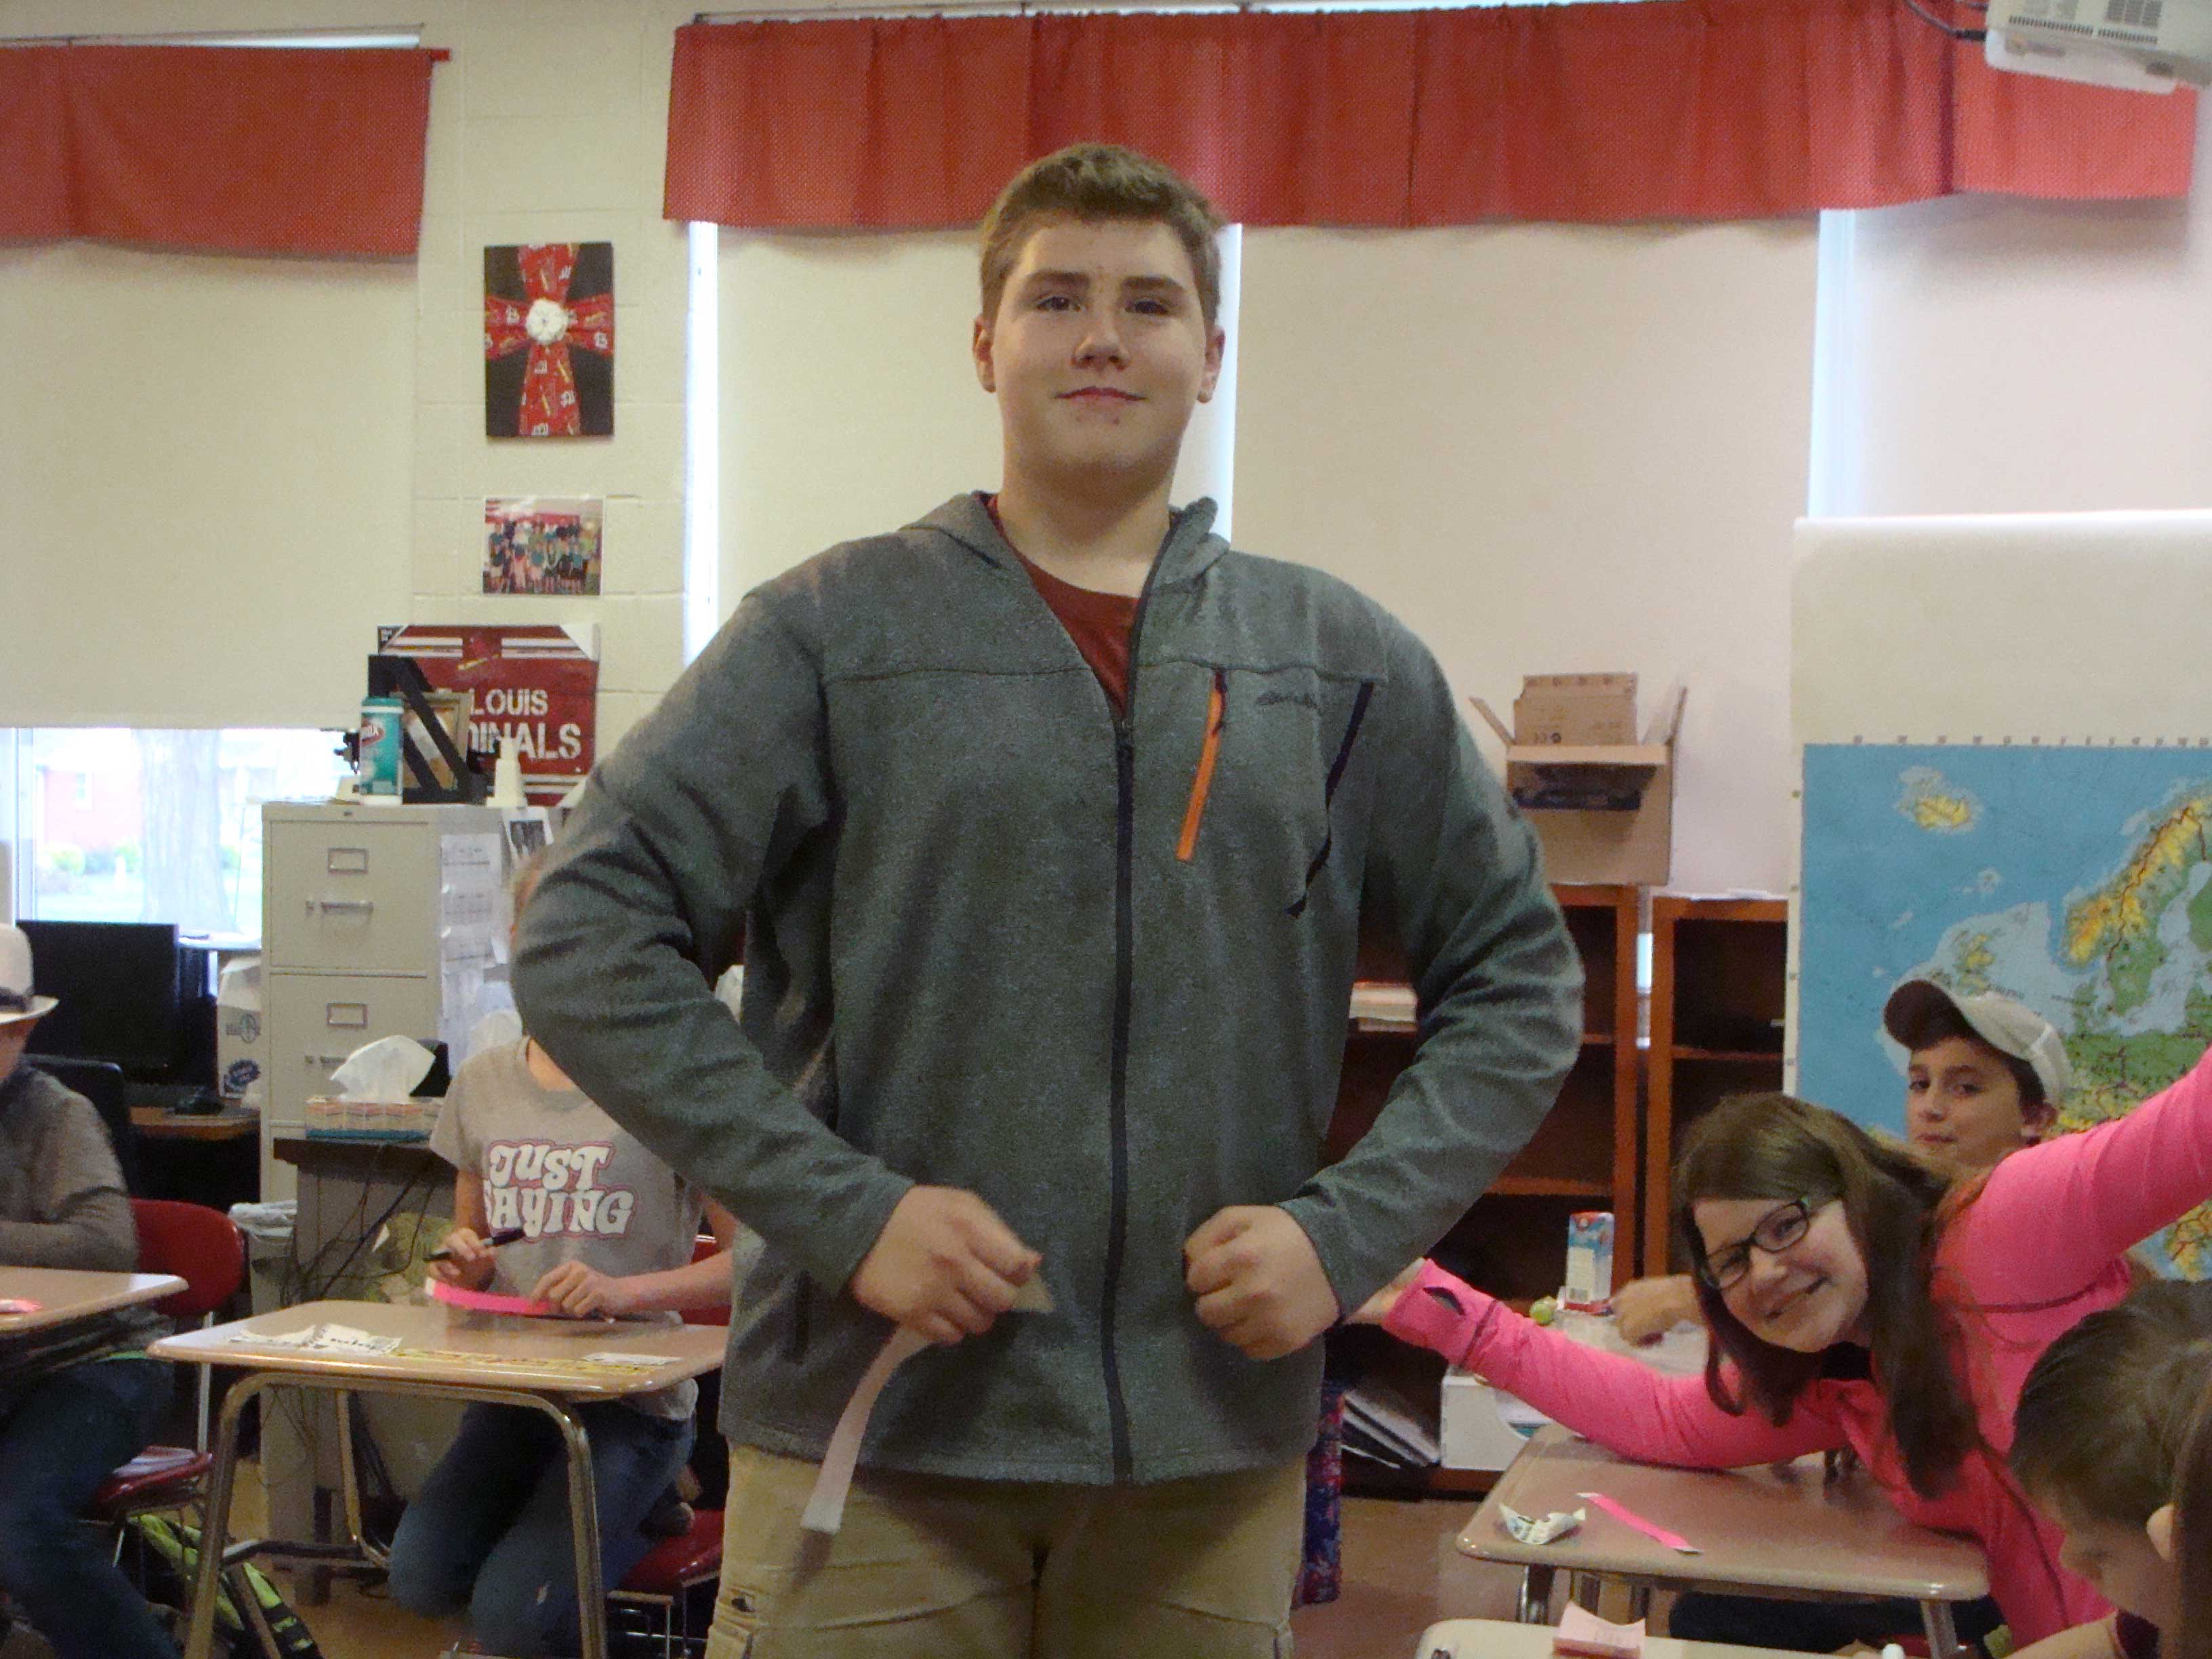 TEACHER OF THE DAY—John Crippen posed in Ann Whistler's classroom as the Teacher for the Day on March 29, 2017. (Submitted photo)